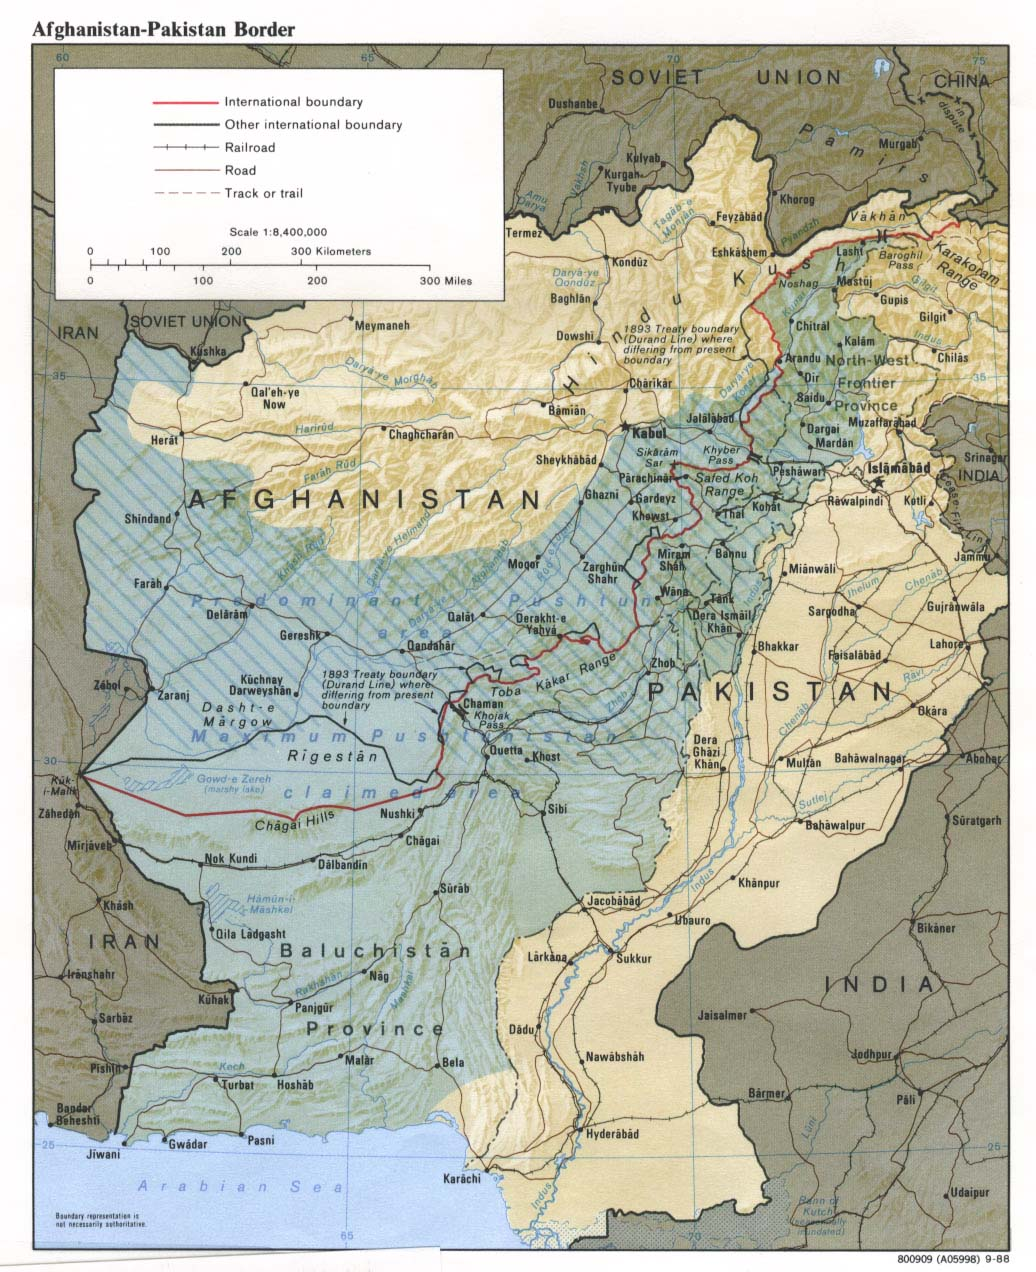 Durand Line Wikipedia - Border checkpost us map